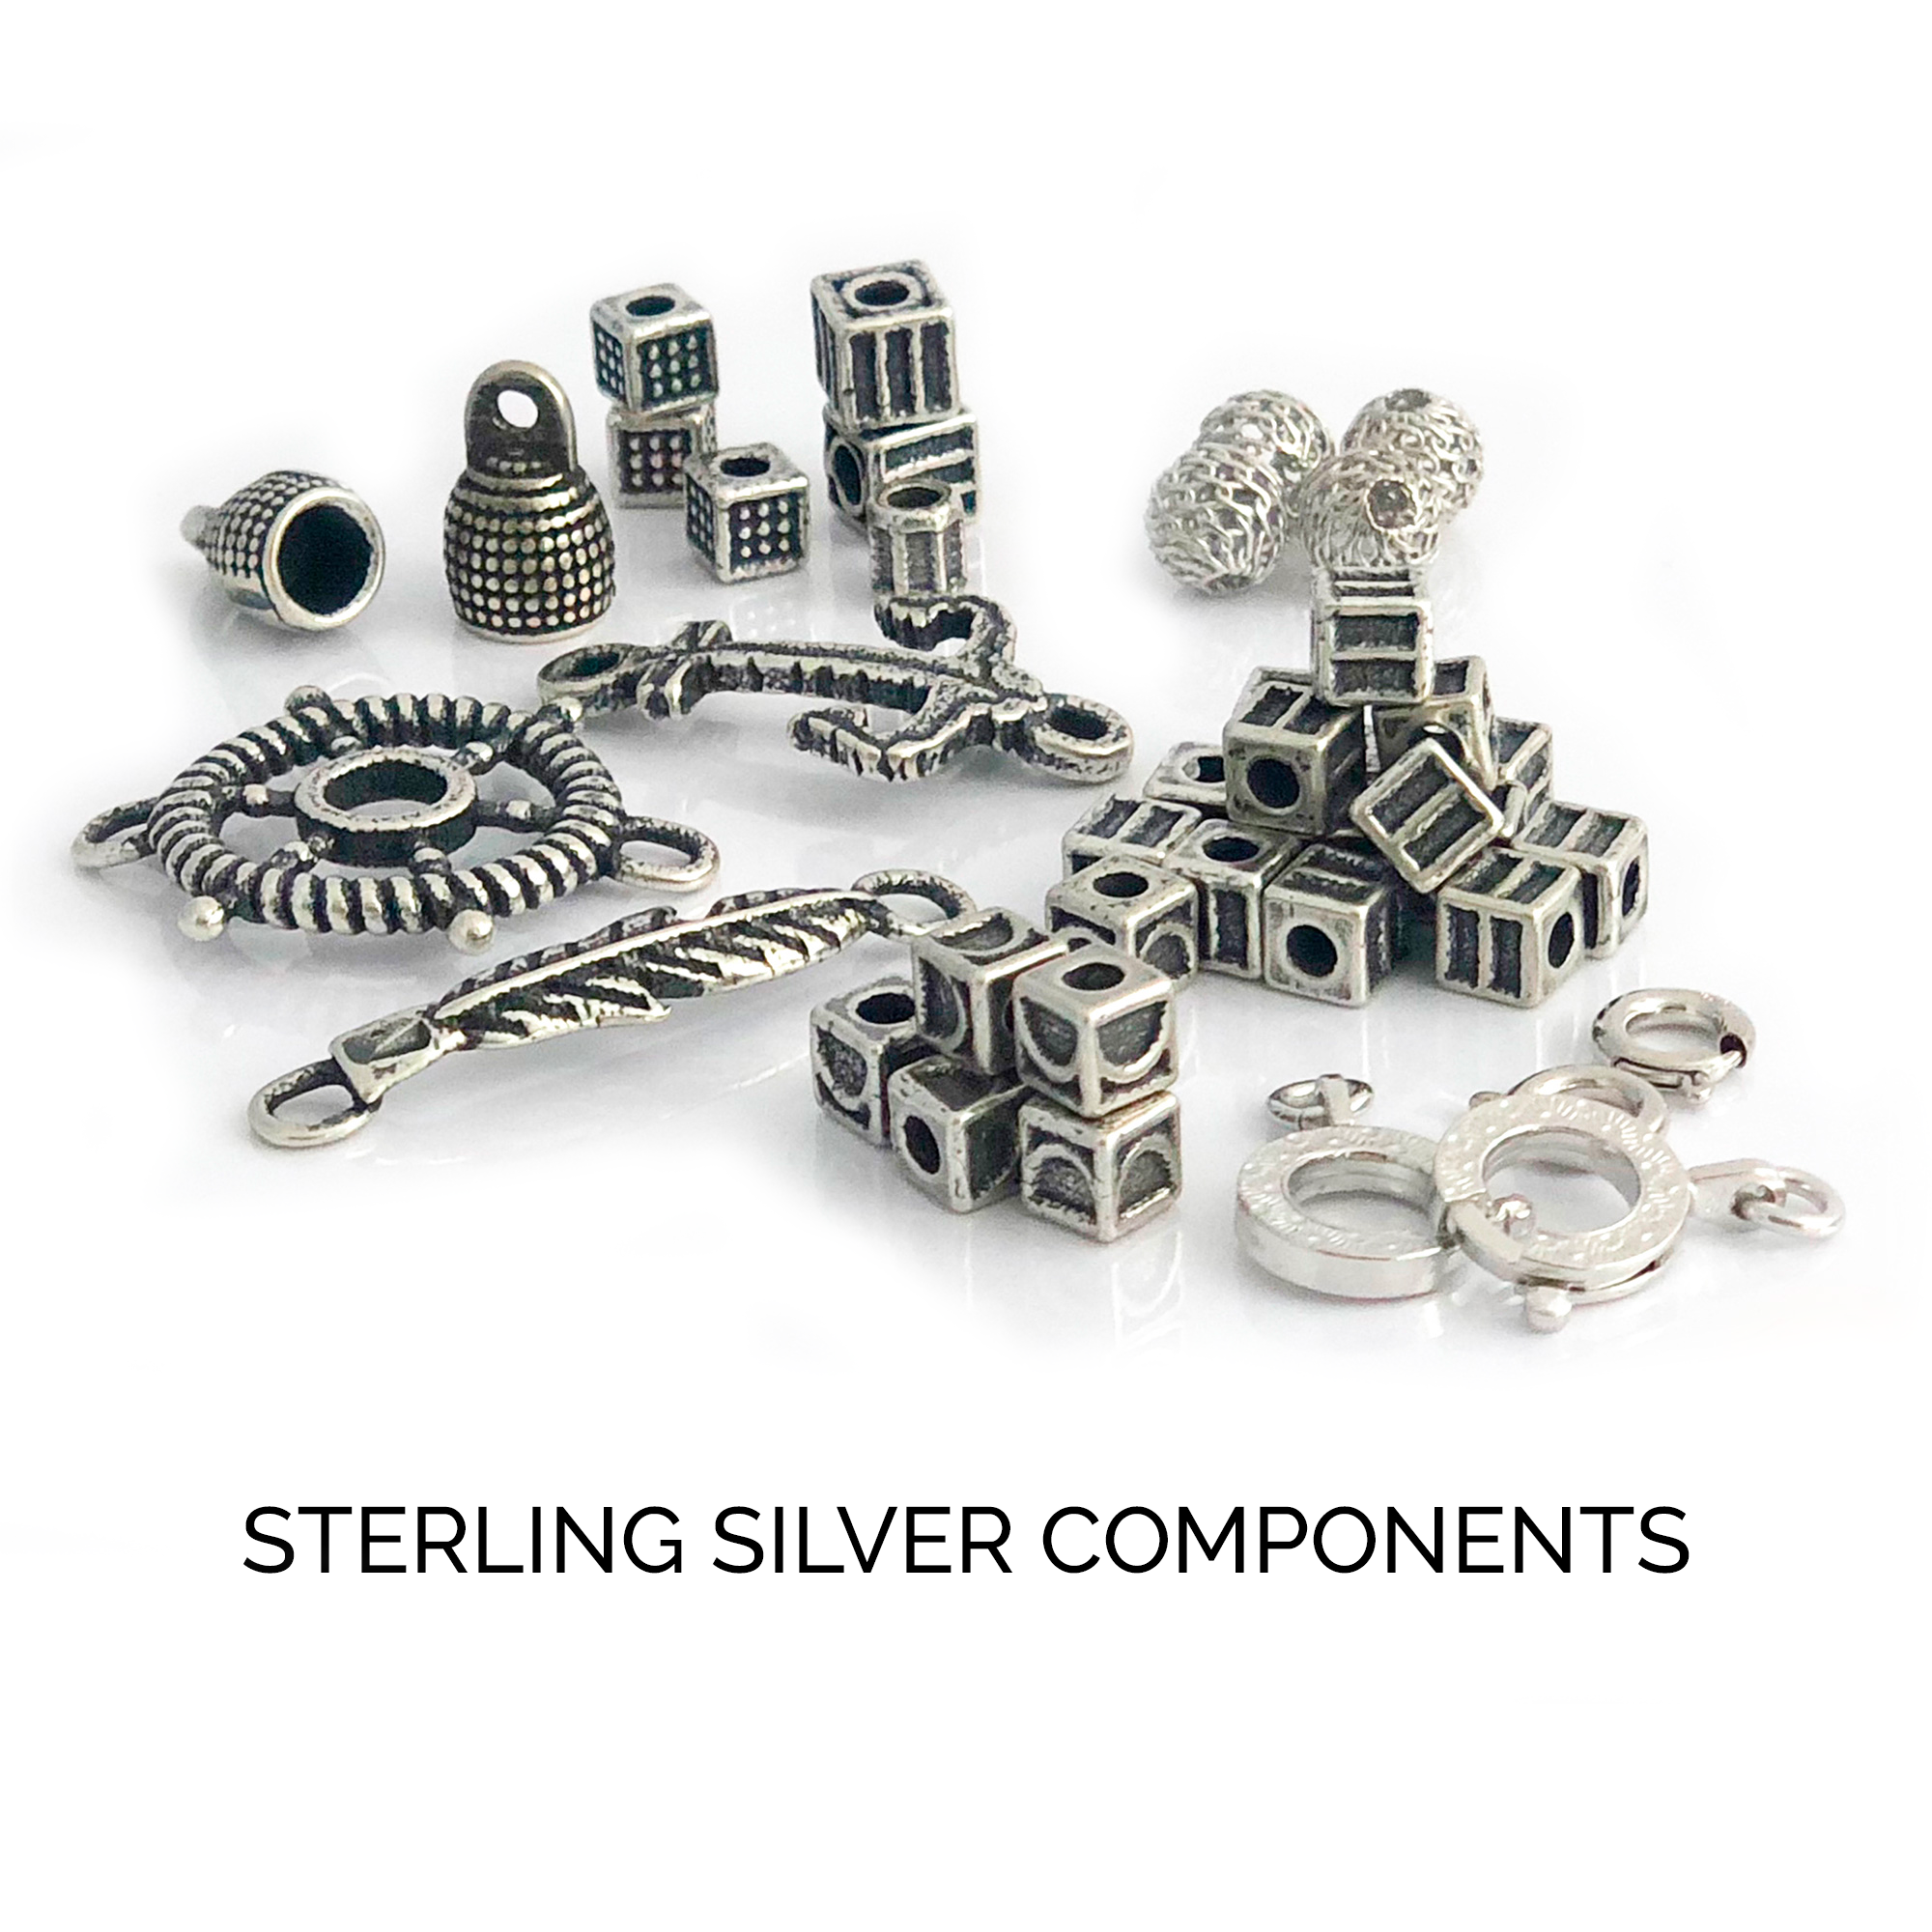 STERLING SILVER COMPONENTS